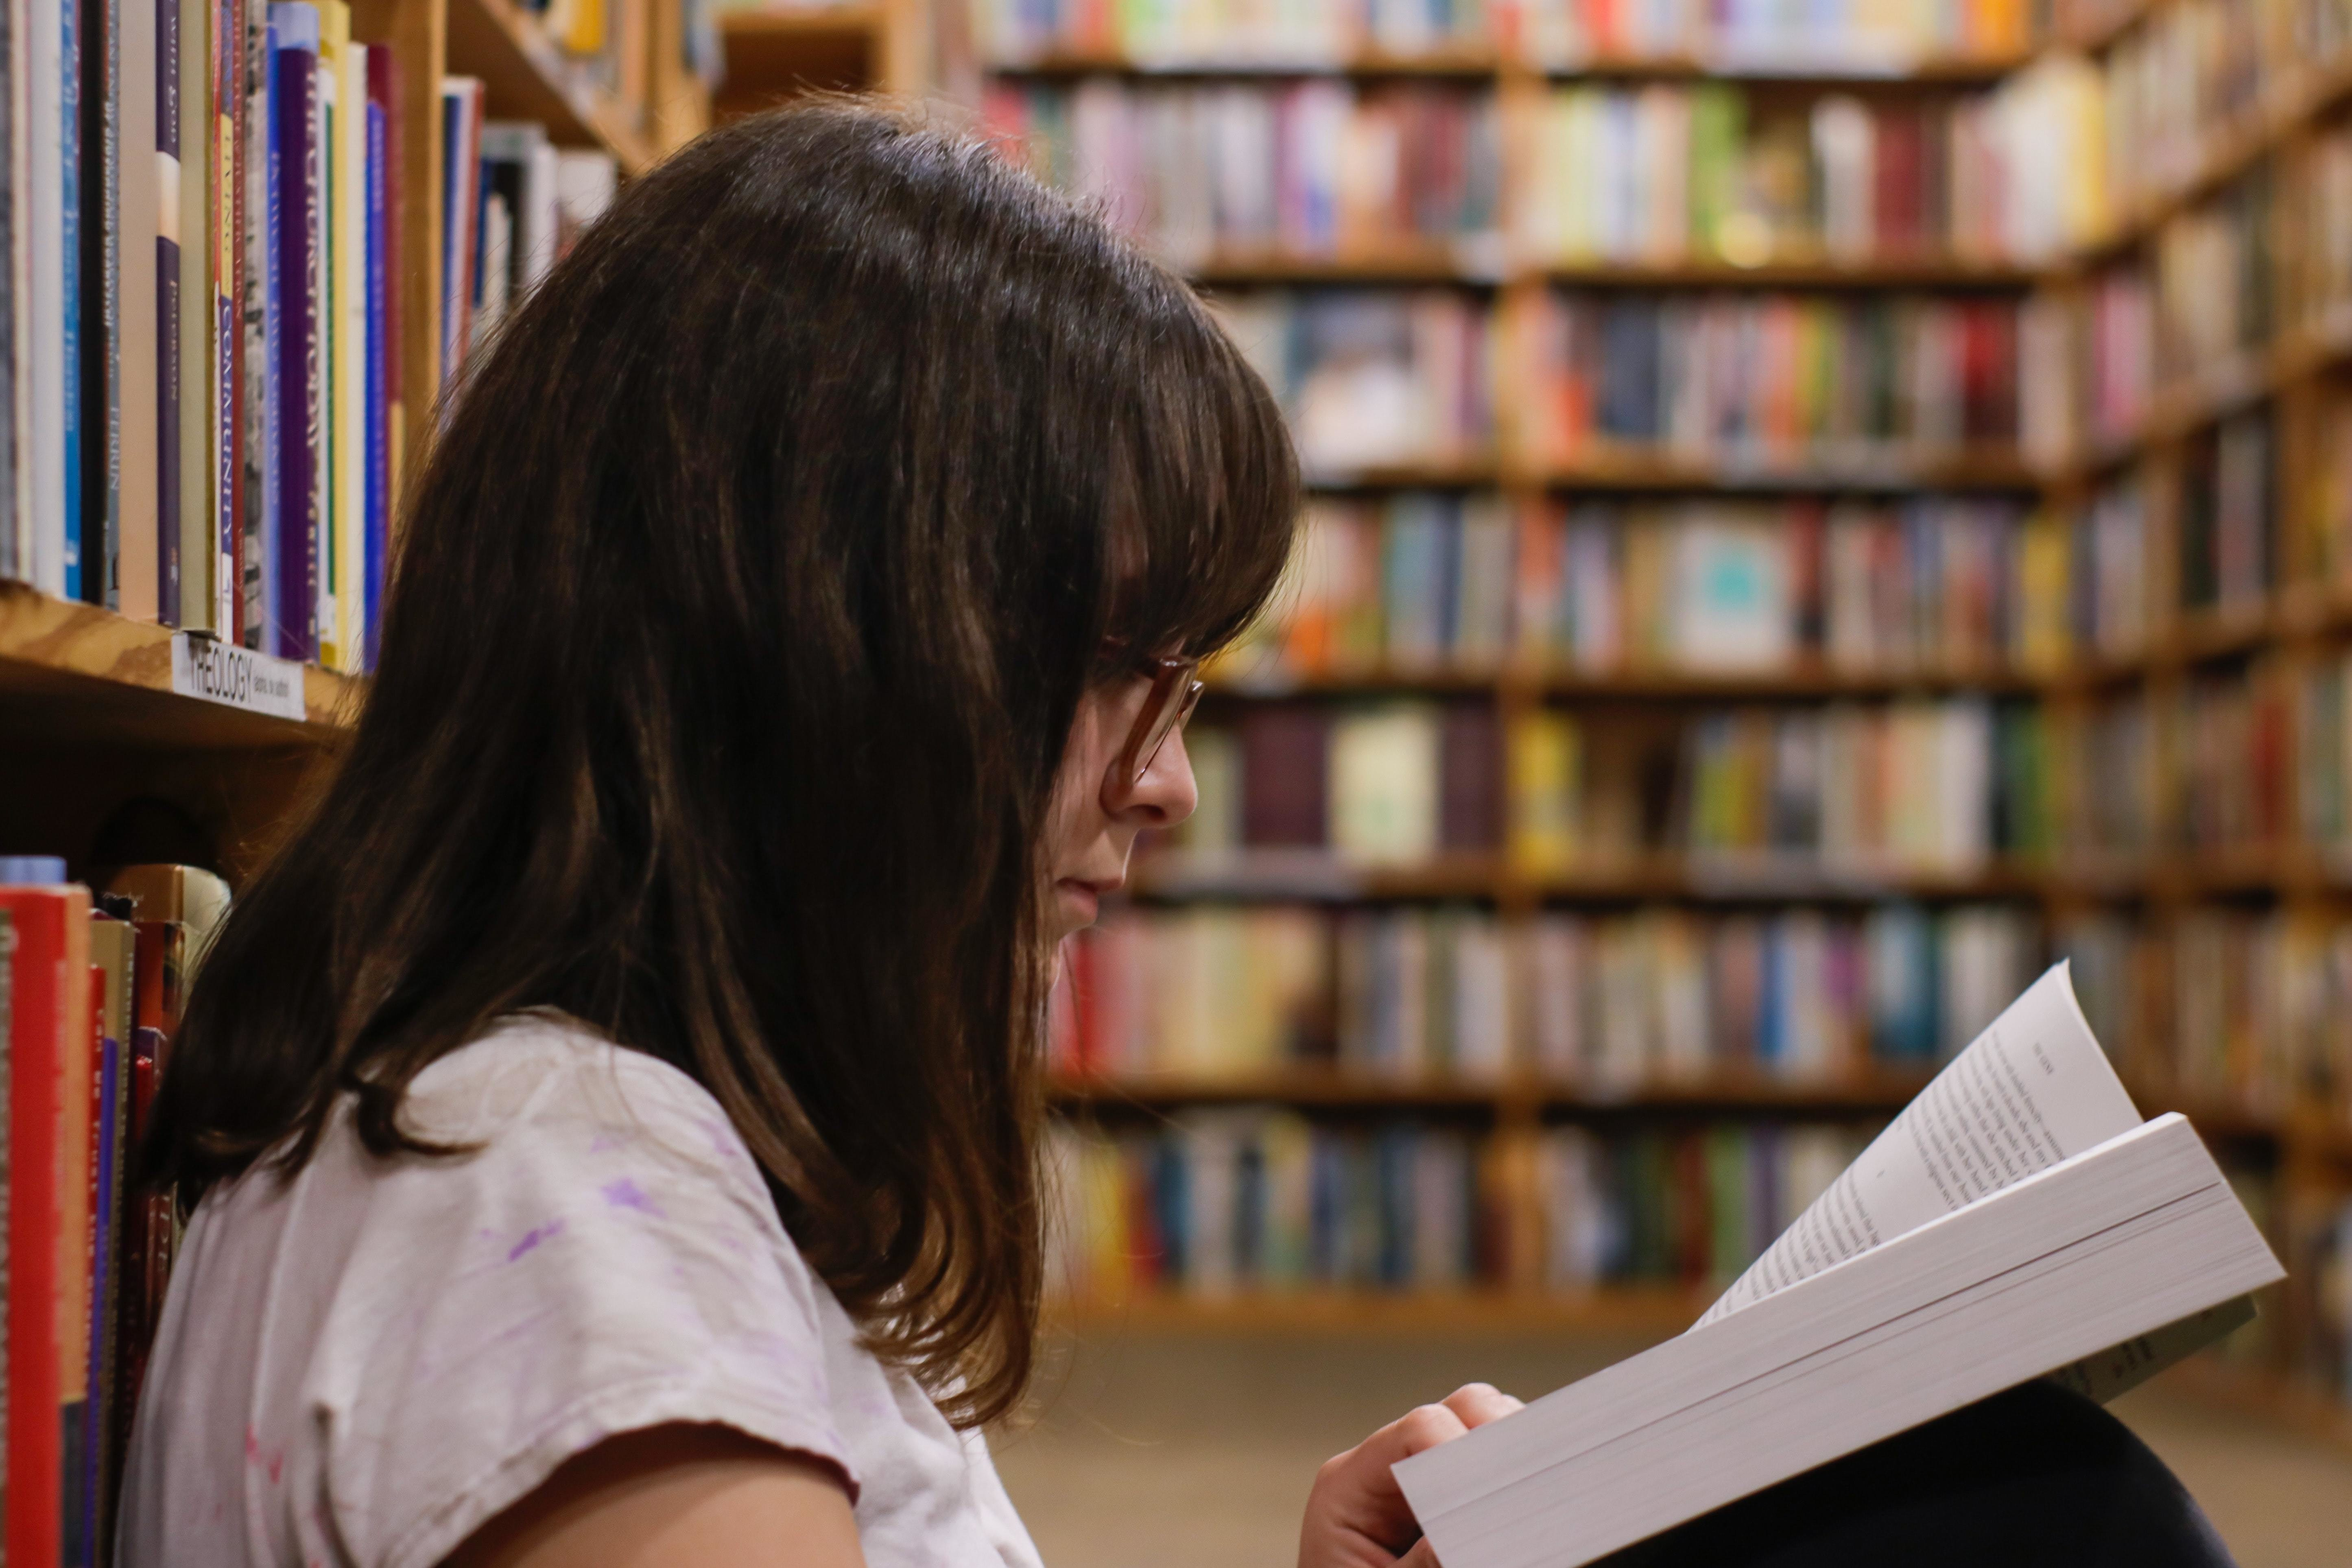 image of a young person reading a book